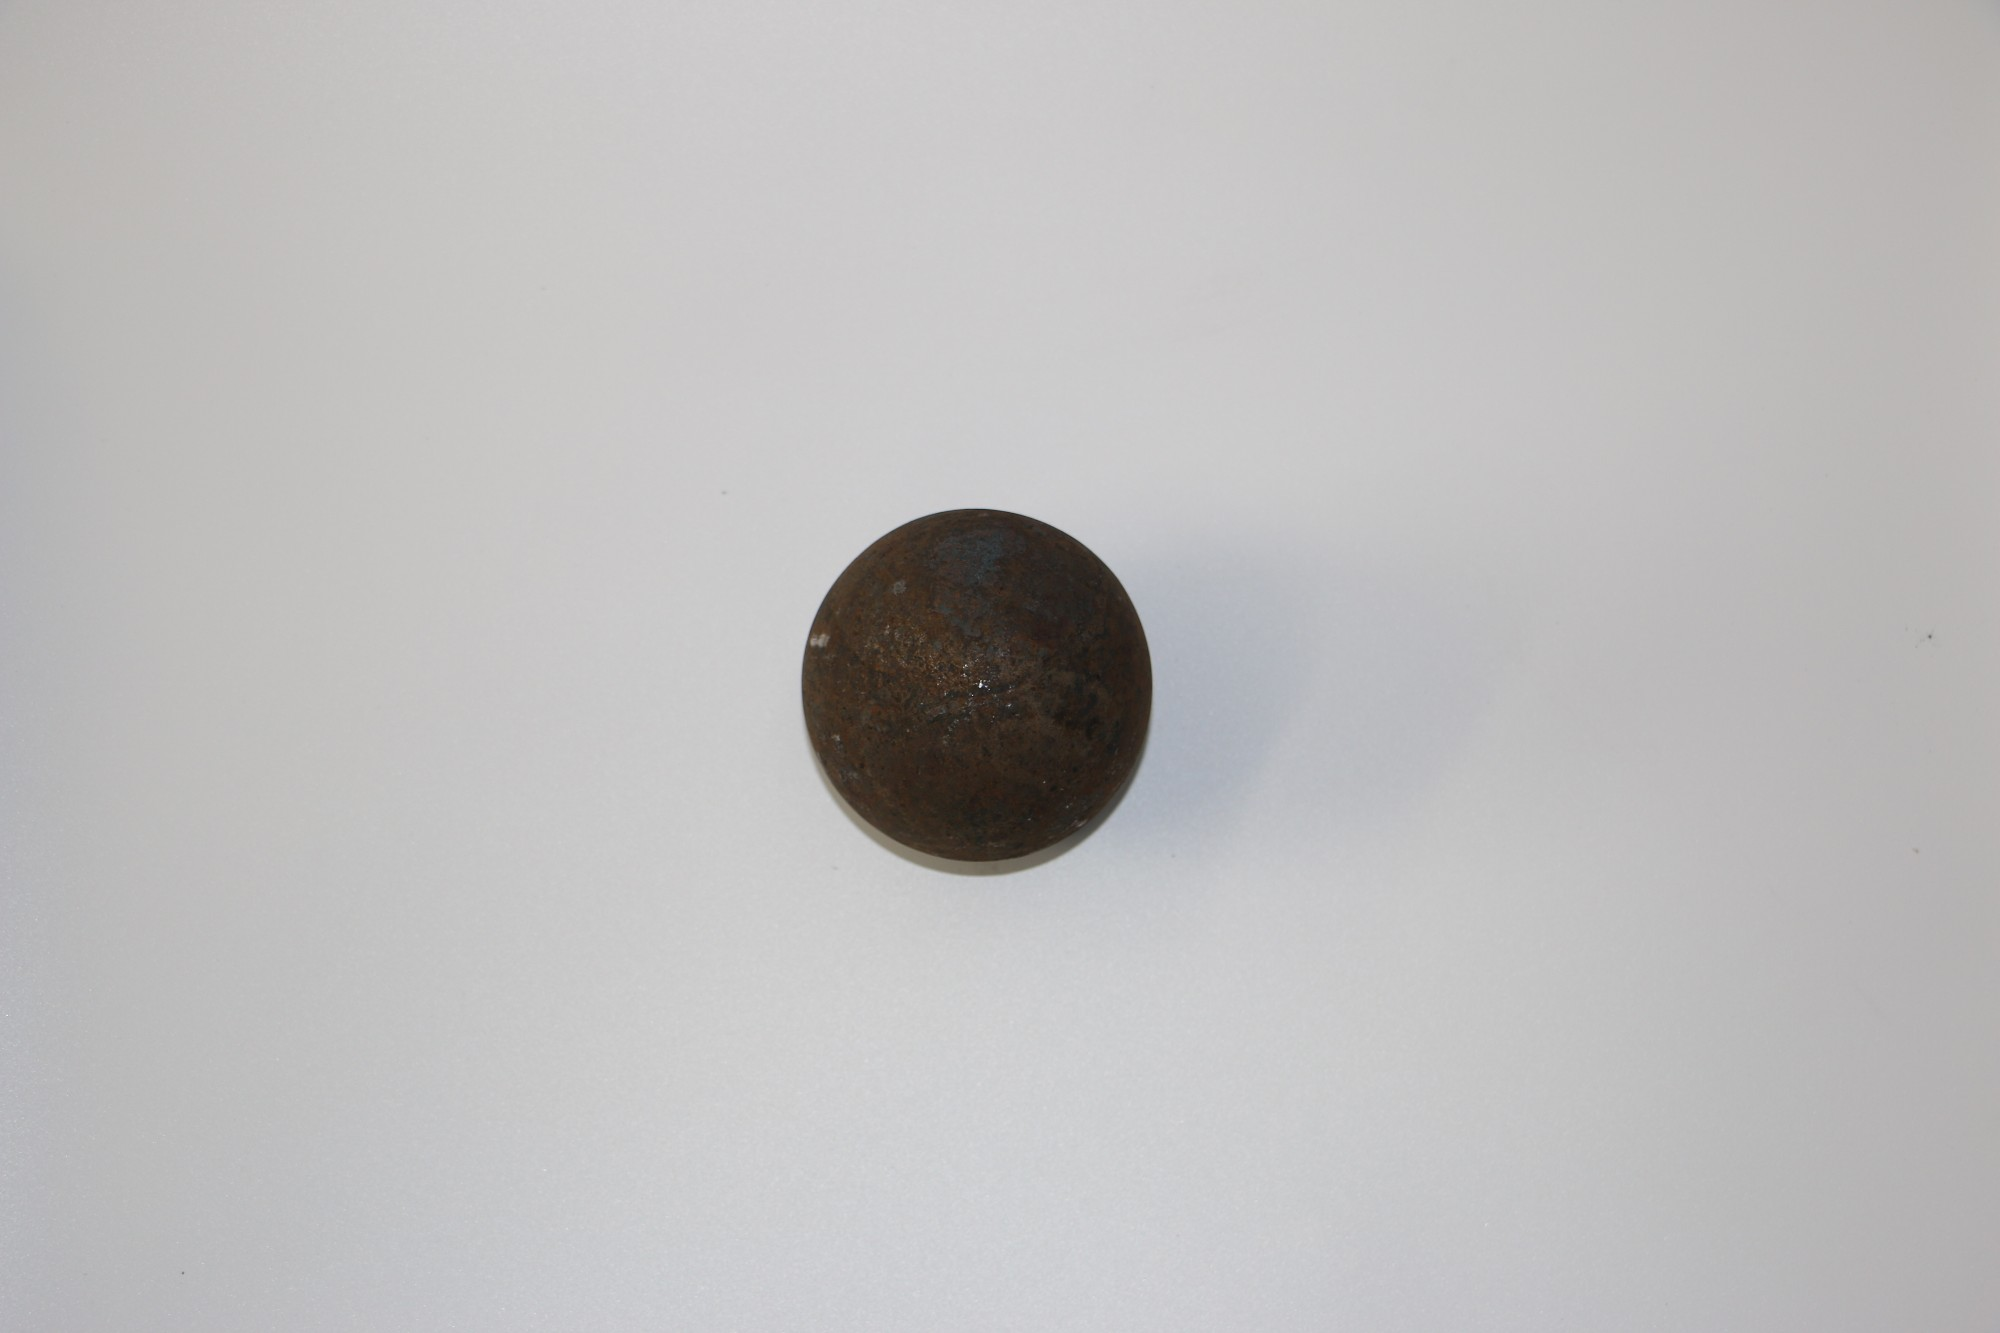 Forged Steel Grinding Media Balls For Mining Ball Mill Manufacturers, Forged Steel Grinding Media Balls For Mining Ball Mill Factory, Supply Forged Steel Grinding Media Balls For Mining Ball Mill